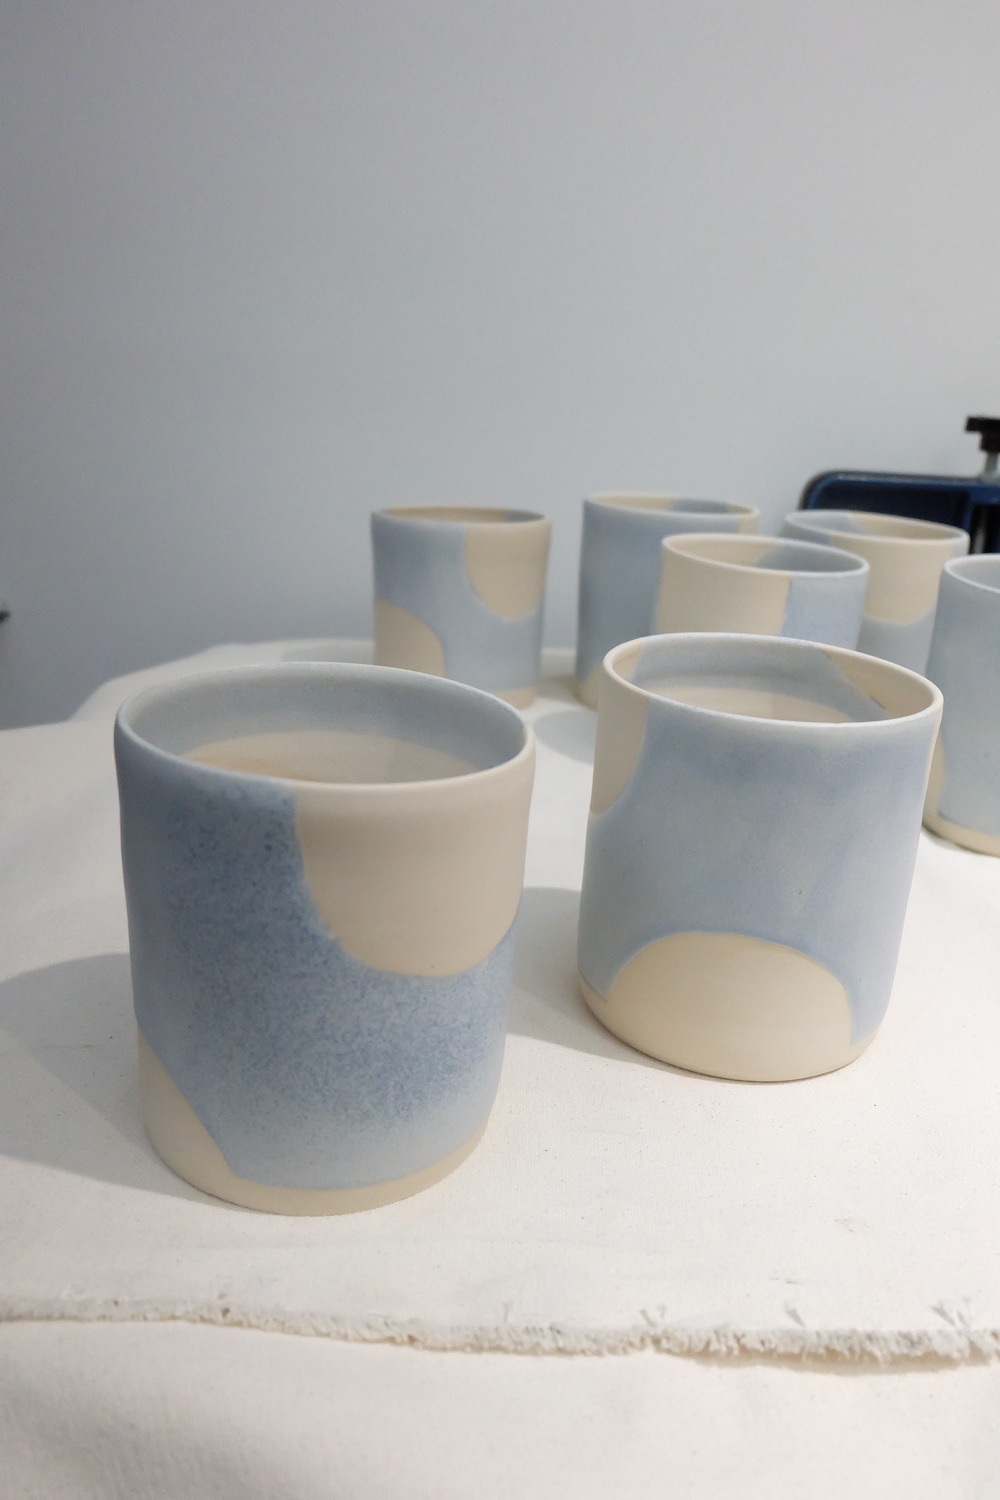 Glazed and fired pots in lavender.